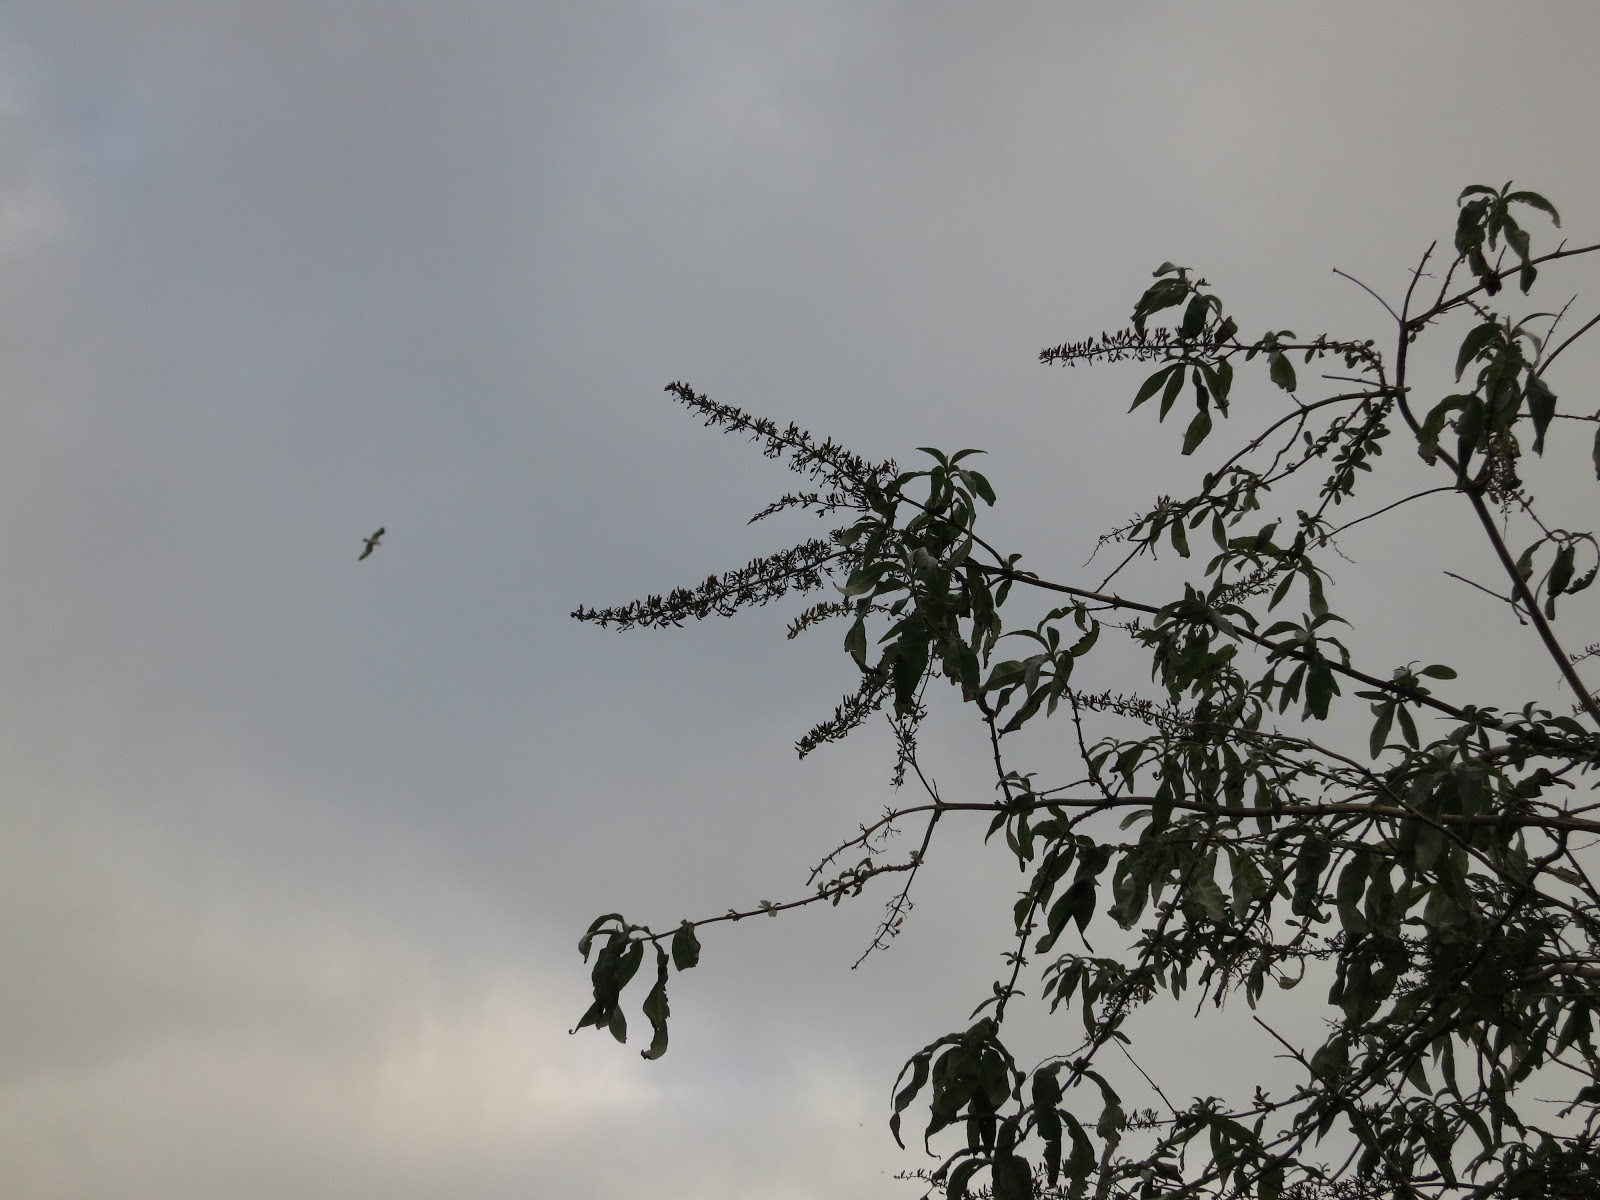 Dead Buddleia flowers and leaves silhouetted against a grey sky.